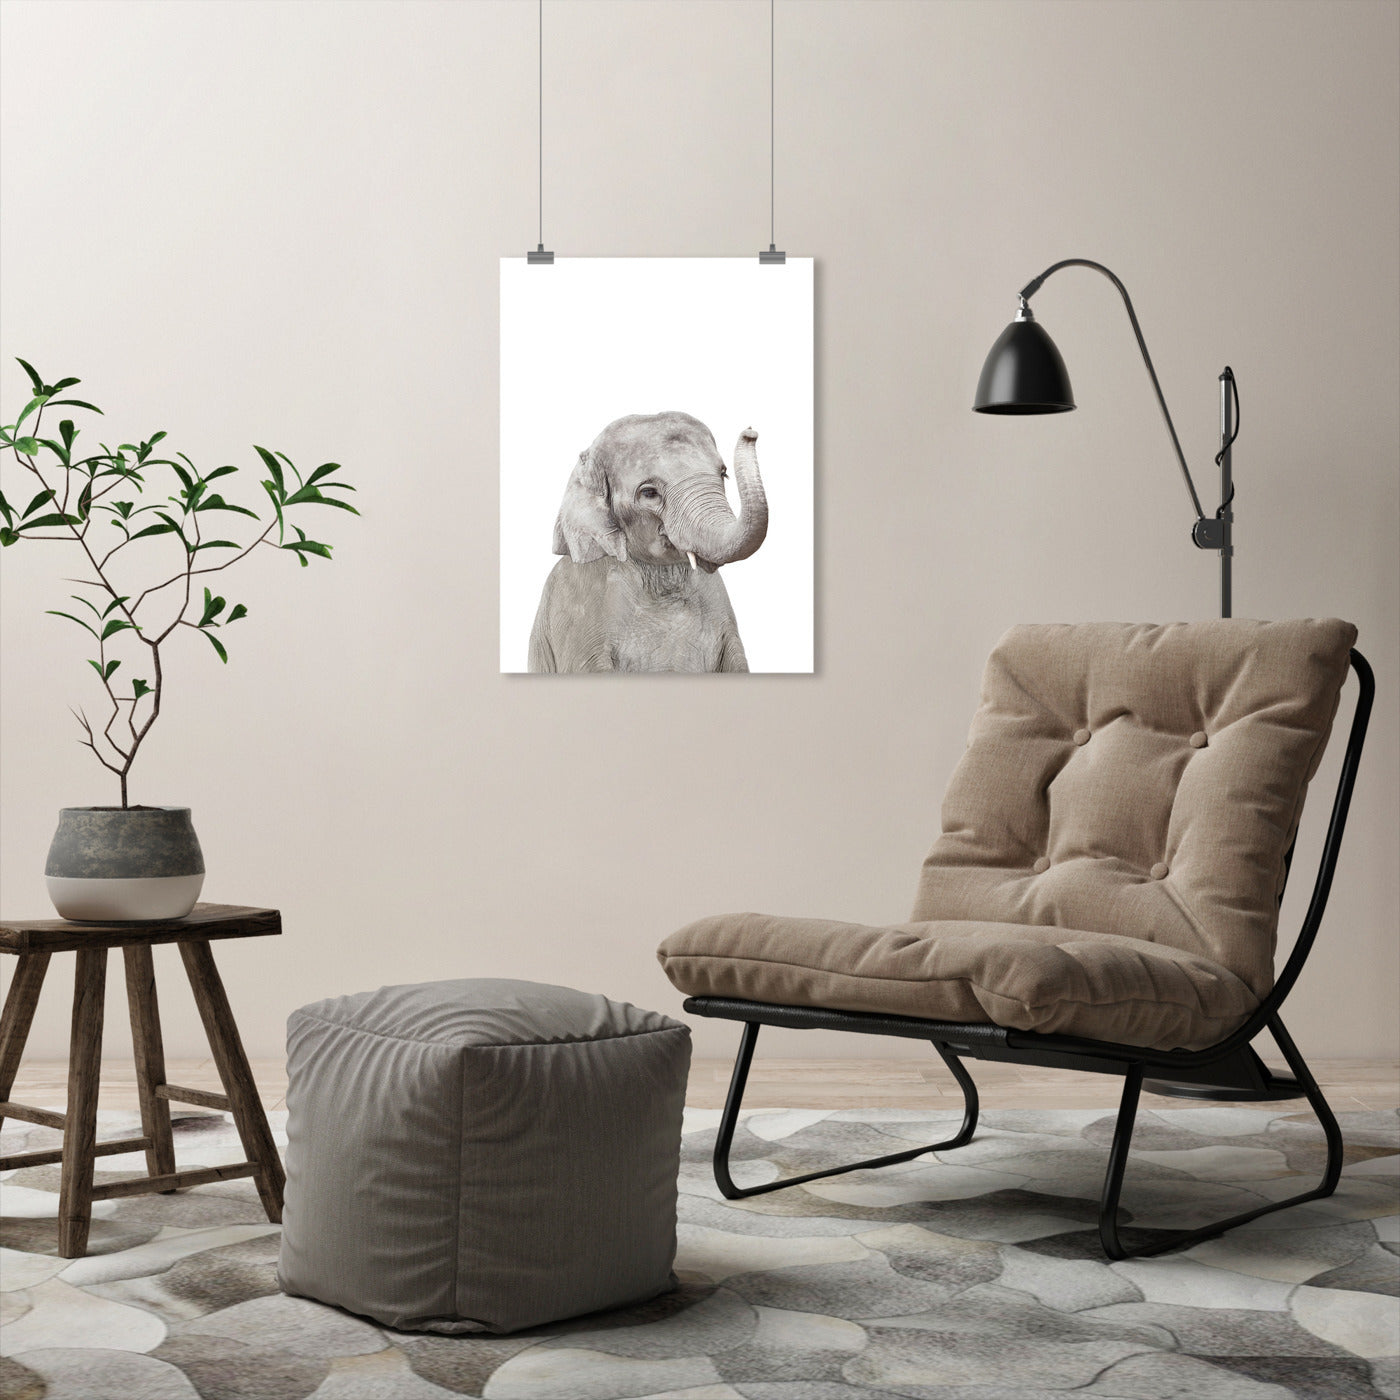 Little Elephant by Sisi and Seb - Art Print - Americanflat